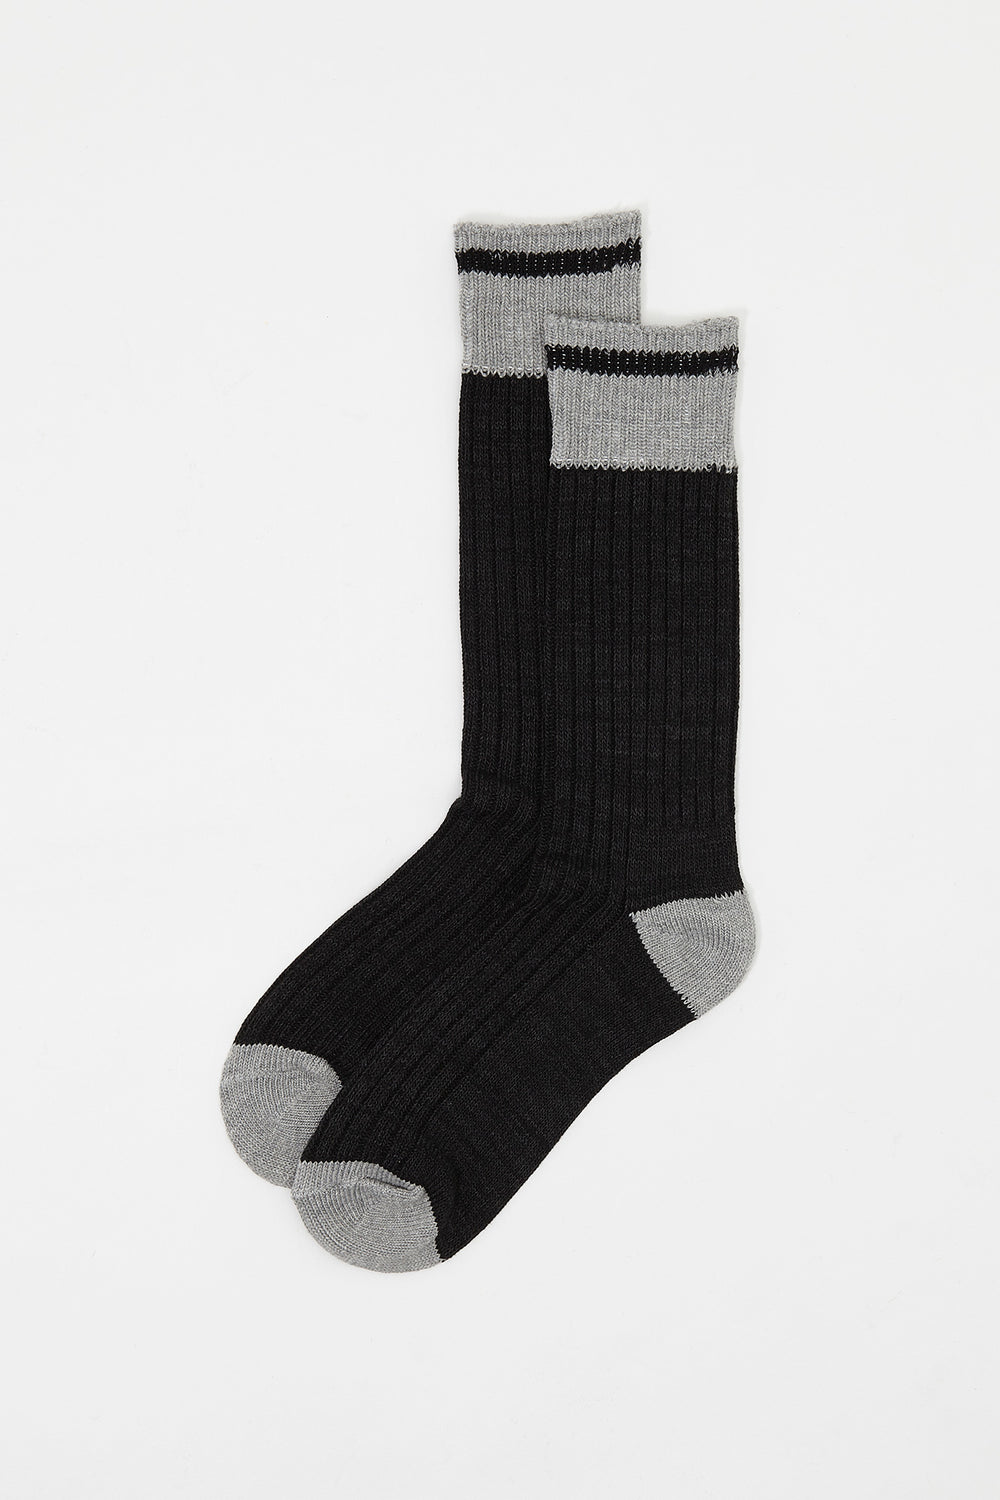 Contrast Stripe Boot Socks (2 Pairs) Charcoal